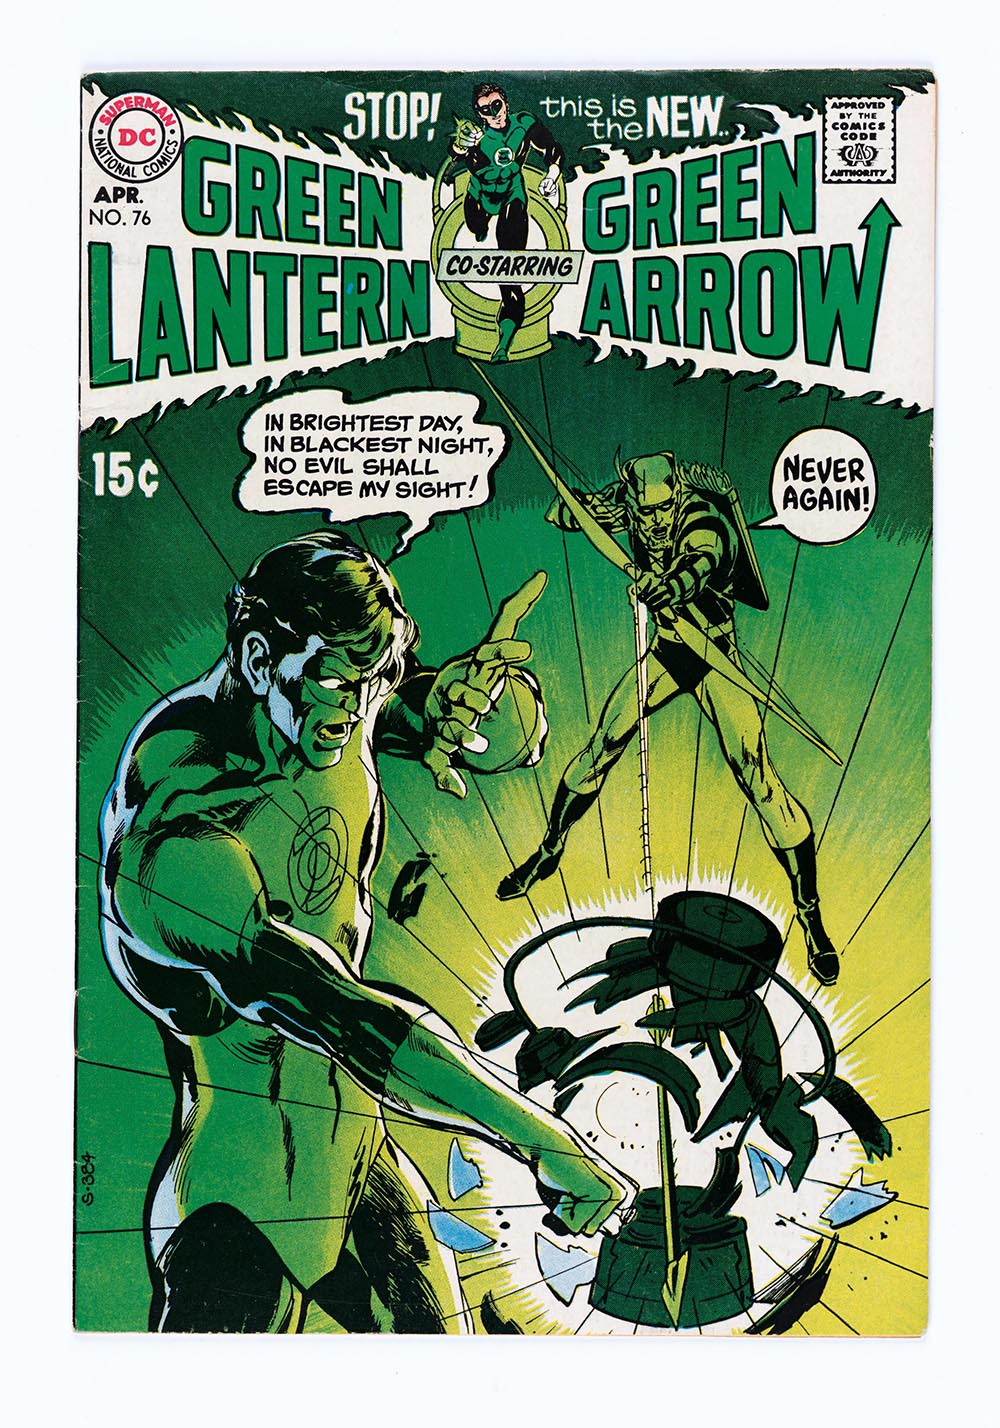 Green Lantern No. 76 cover art by Neal Adams, April 1970